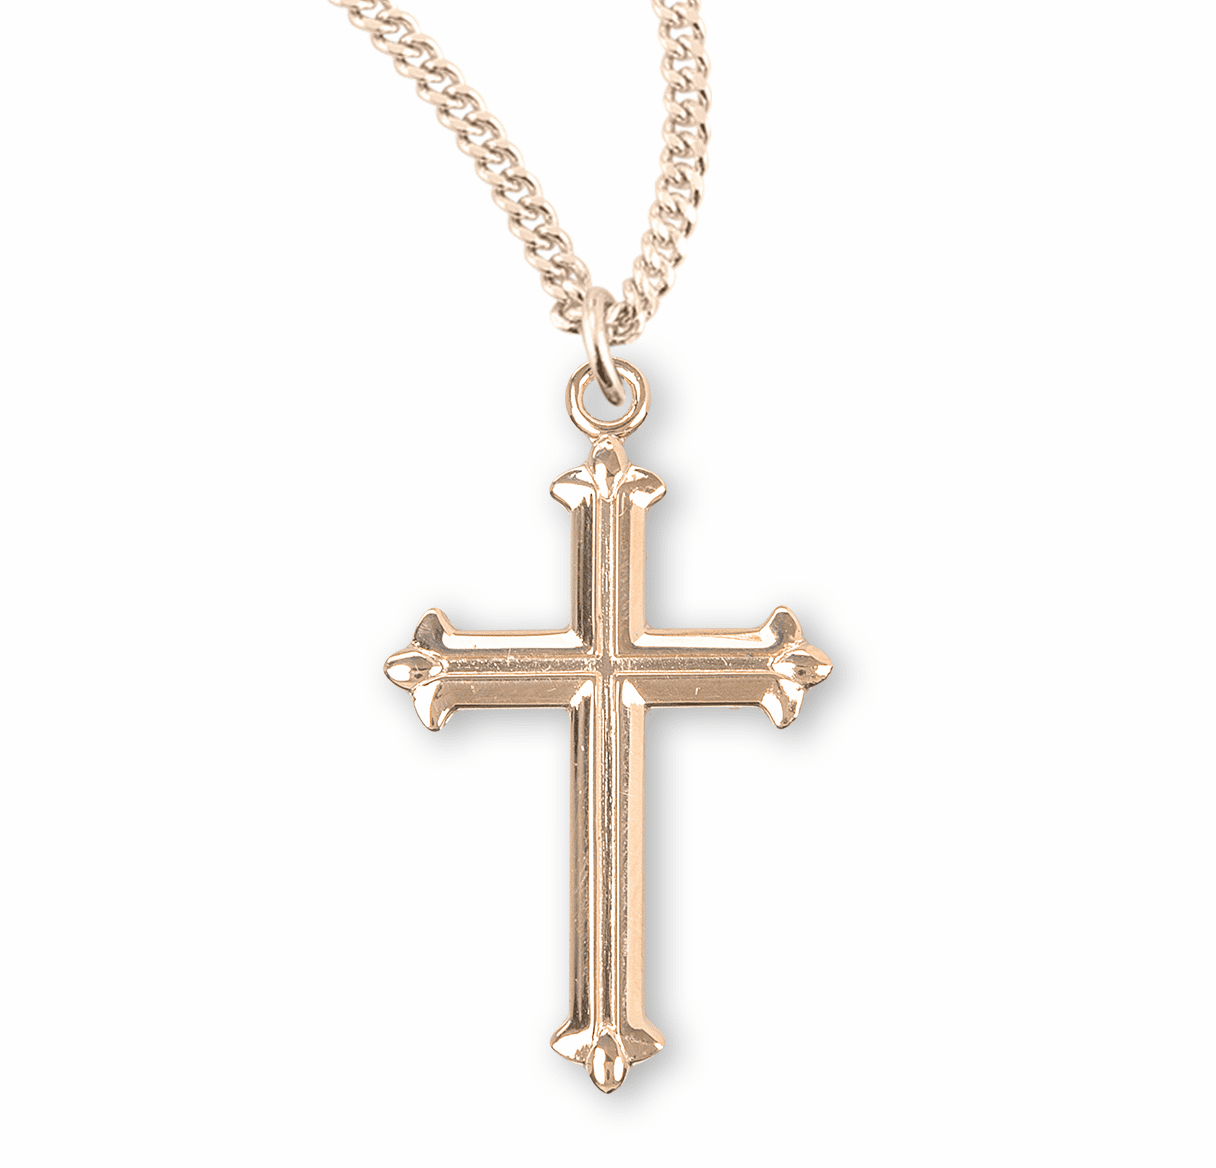 HMH Religious Fleur De Lis Tipped Gold Over Sterling Silver Cross Necklace